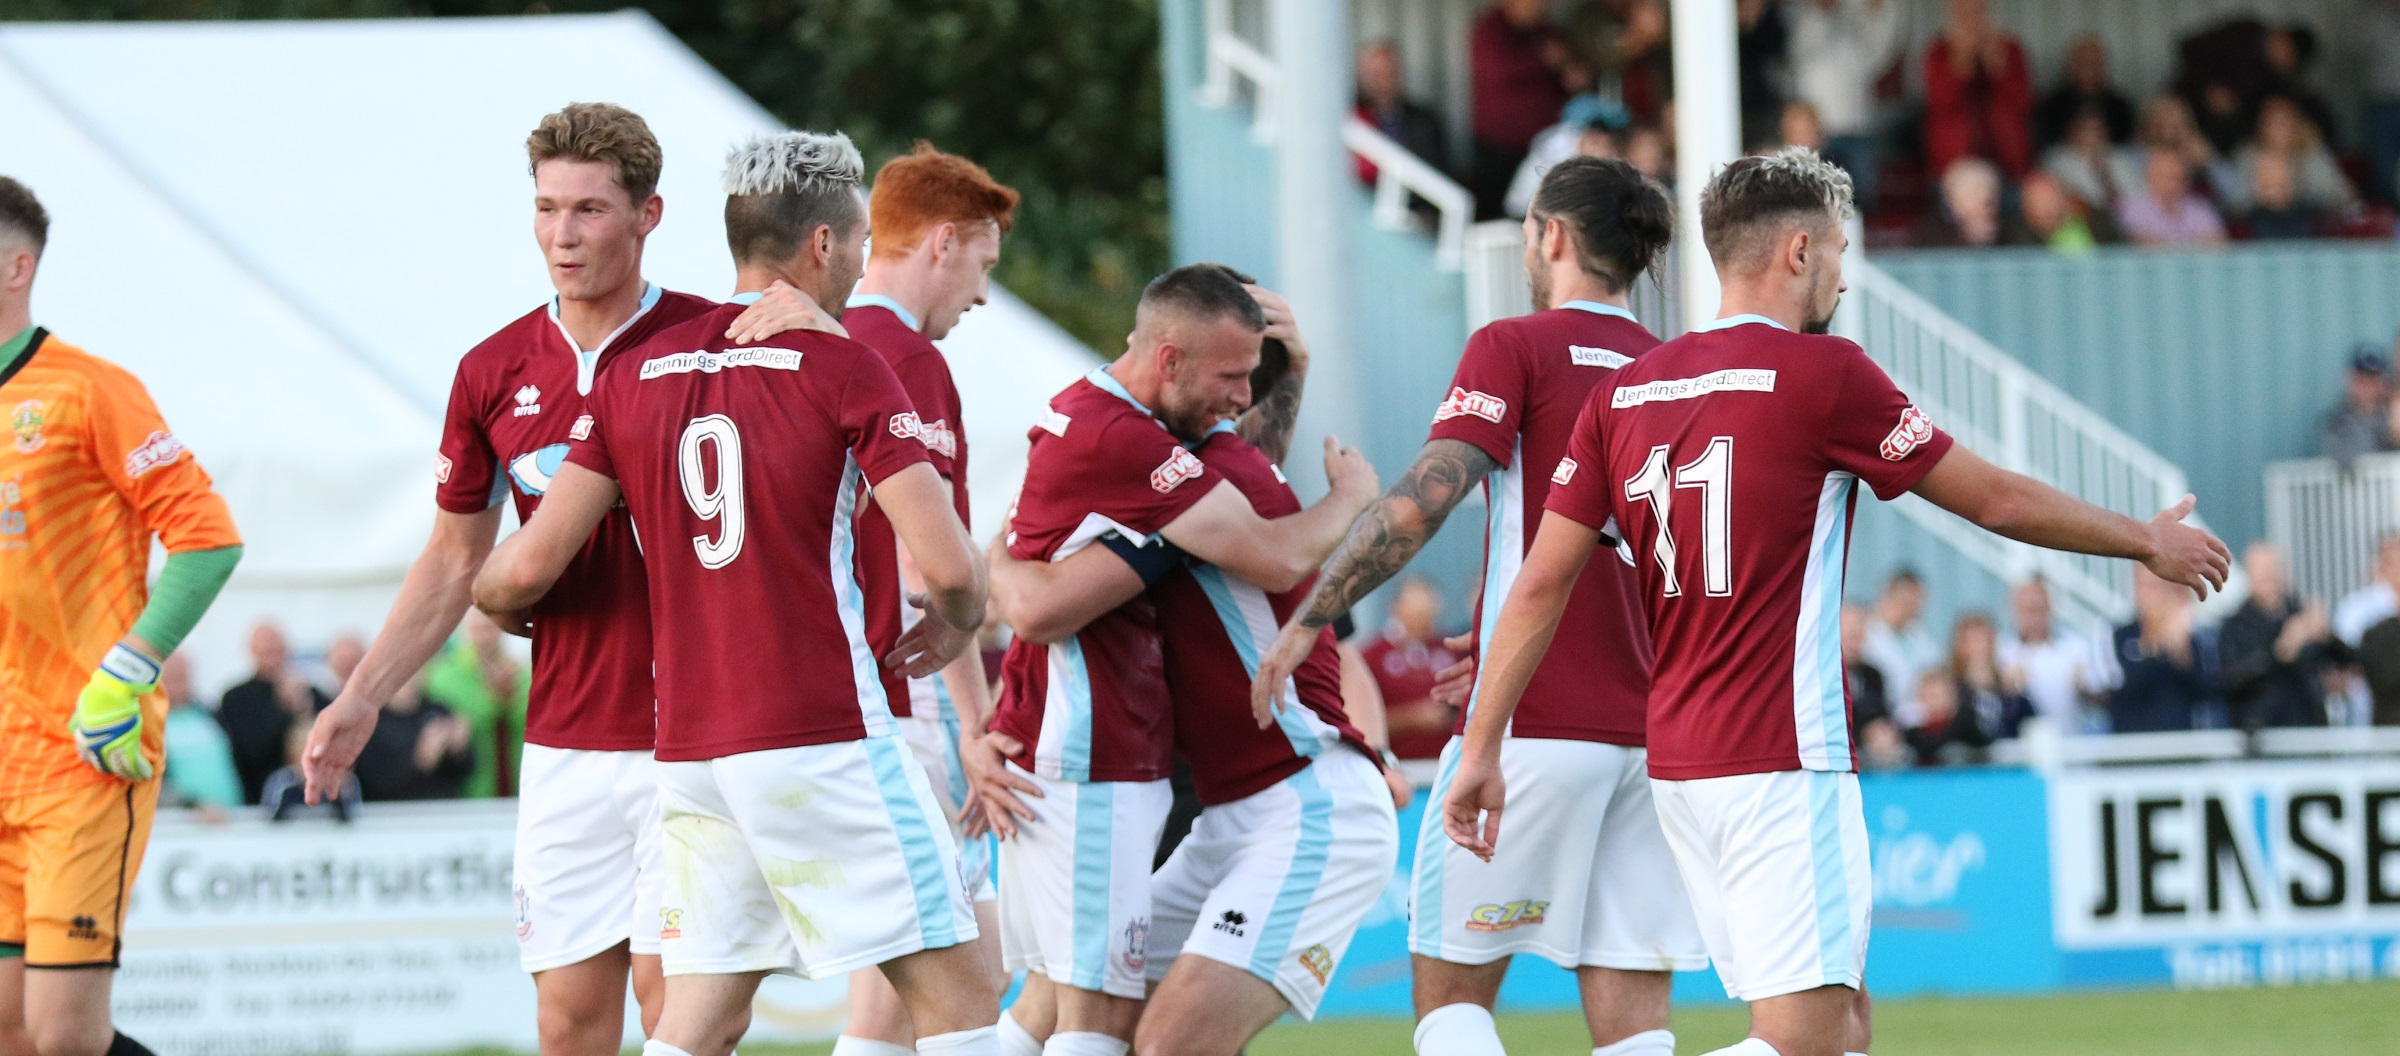 Preview: South Shields vs Bridlington Town, Emirates FA Cup